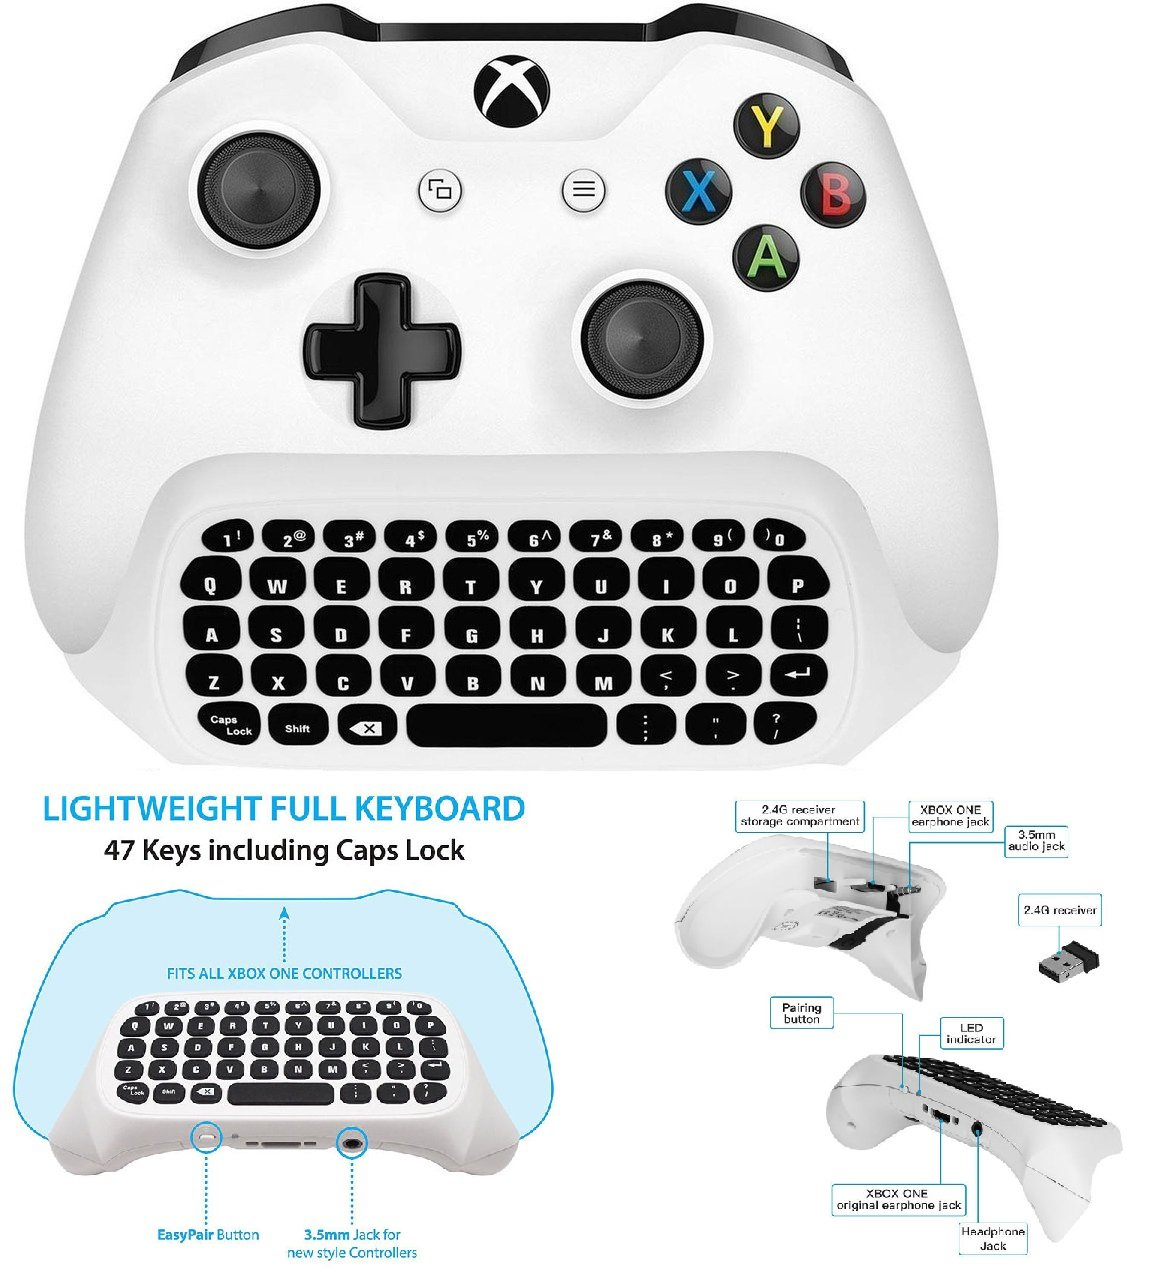 BESTeck Xbox One Mini Keyboard, 2.4G Receiver Wireless Chatpad Message Game Keyboard Keypad for Xbox One / Xbox One S Controller (White)